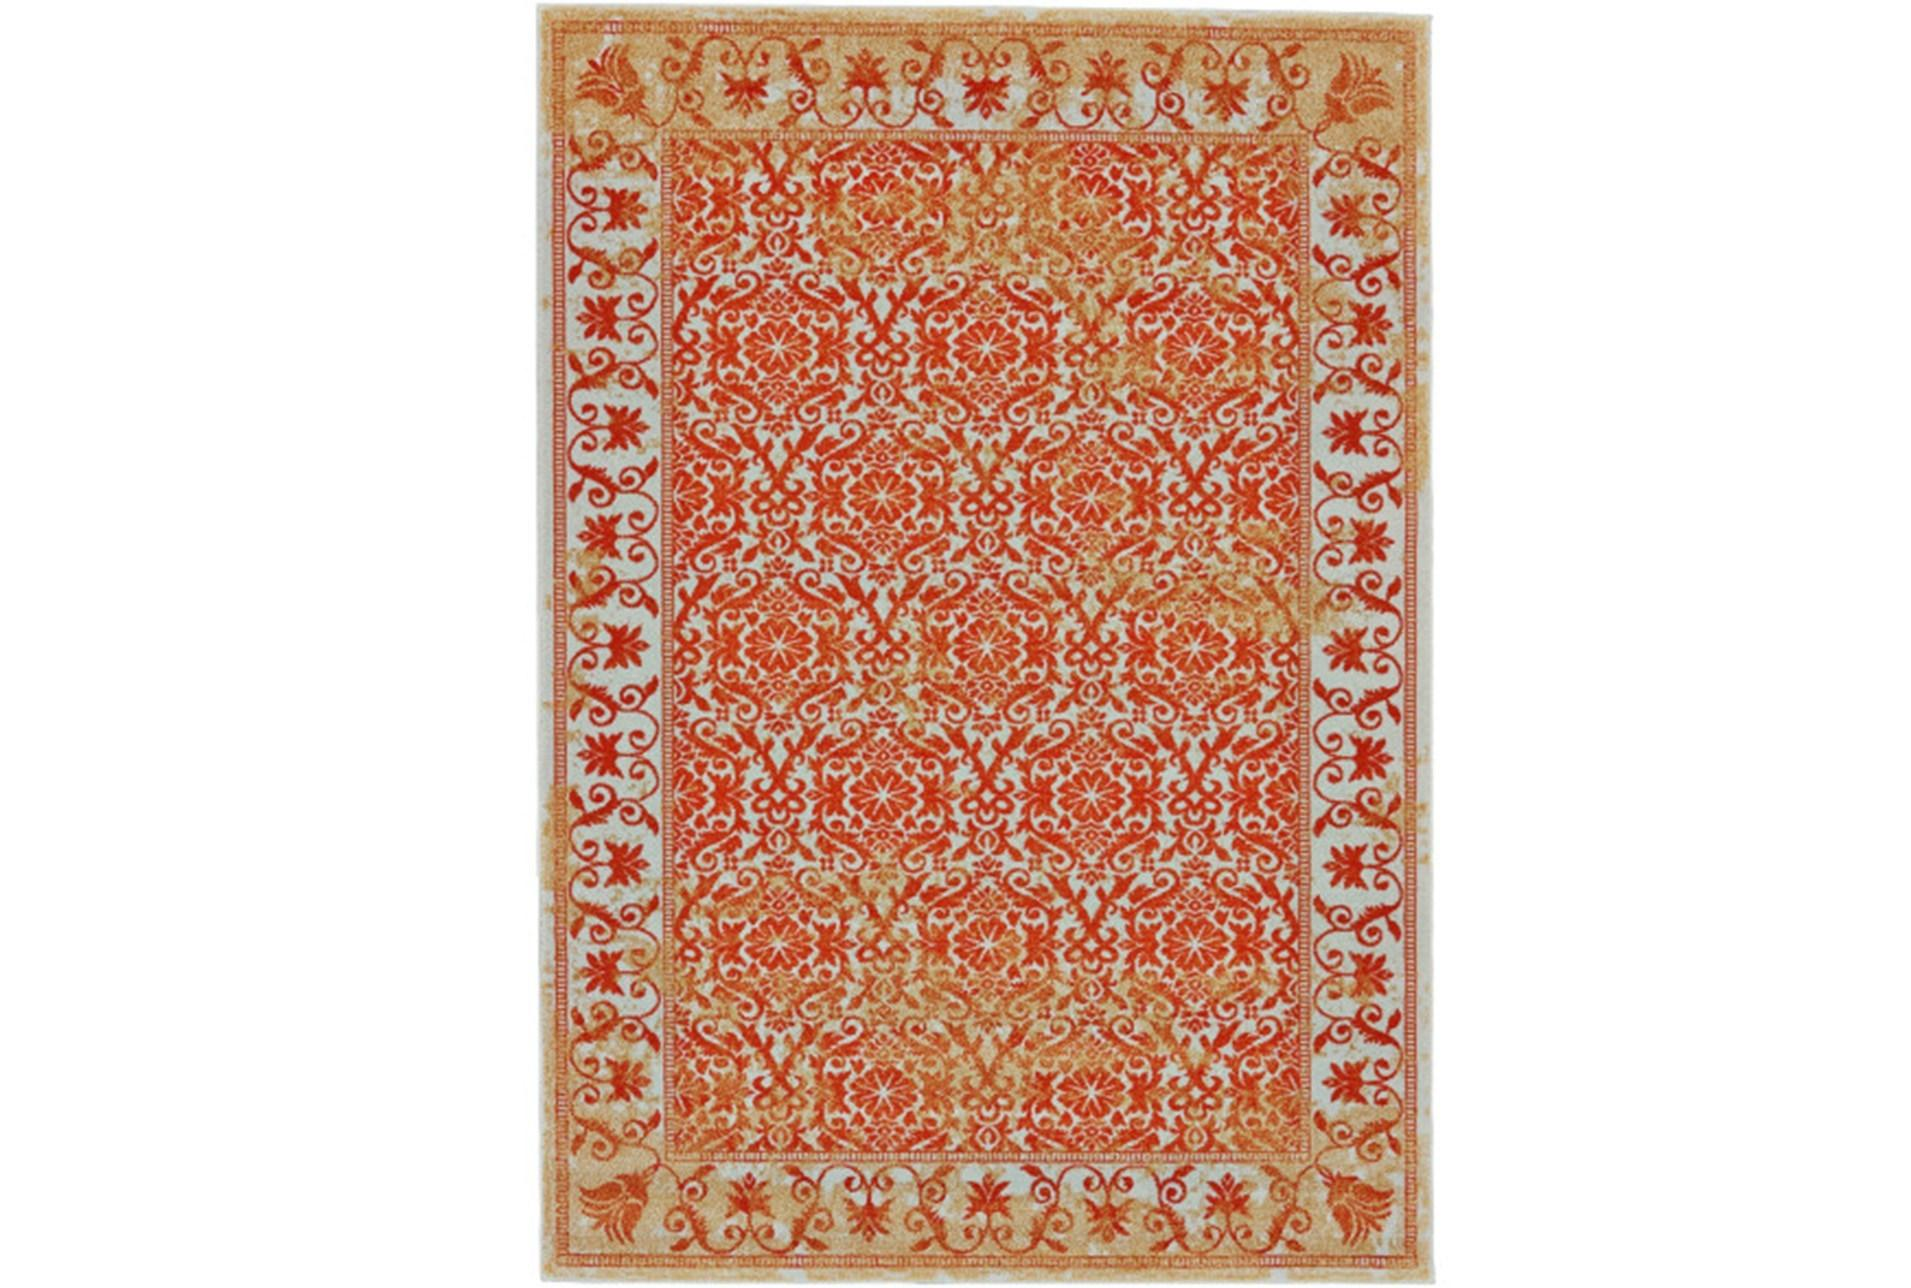 96X132 Rug-Vibrant Orange And Yellow Tapestry | Living Spaces